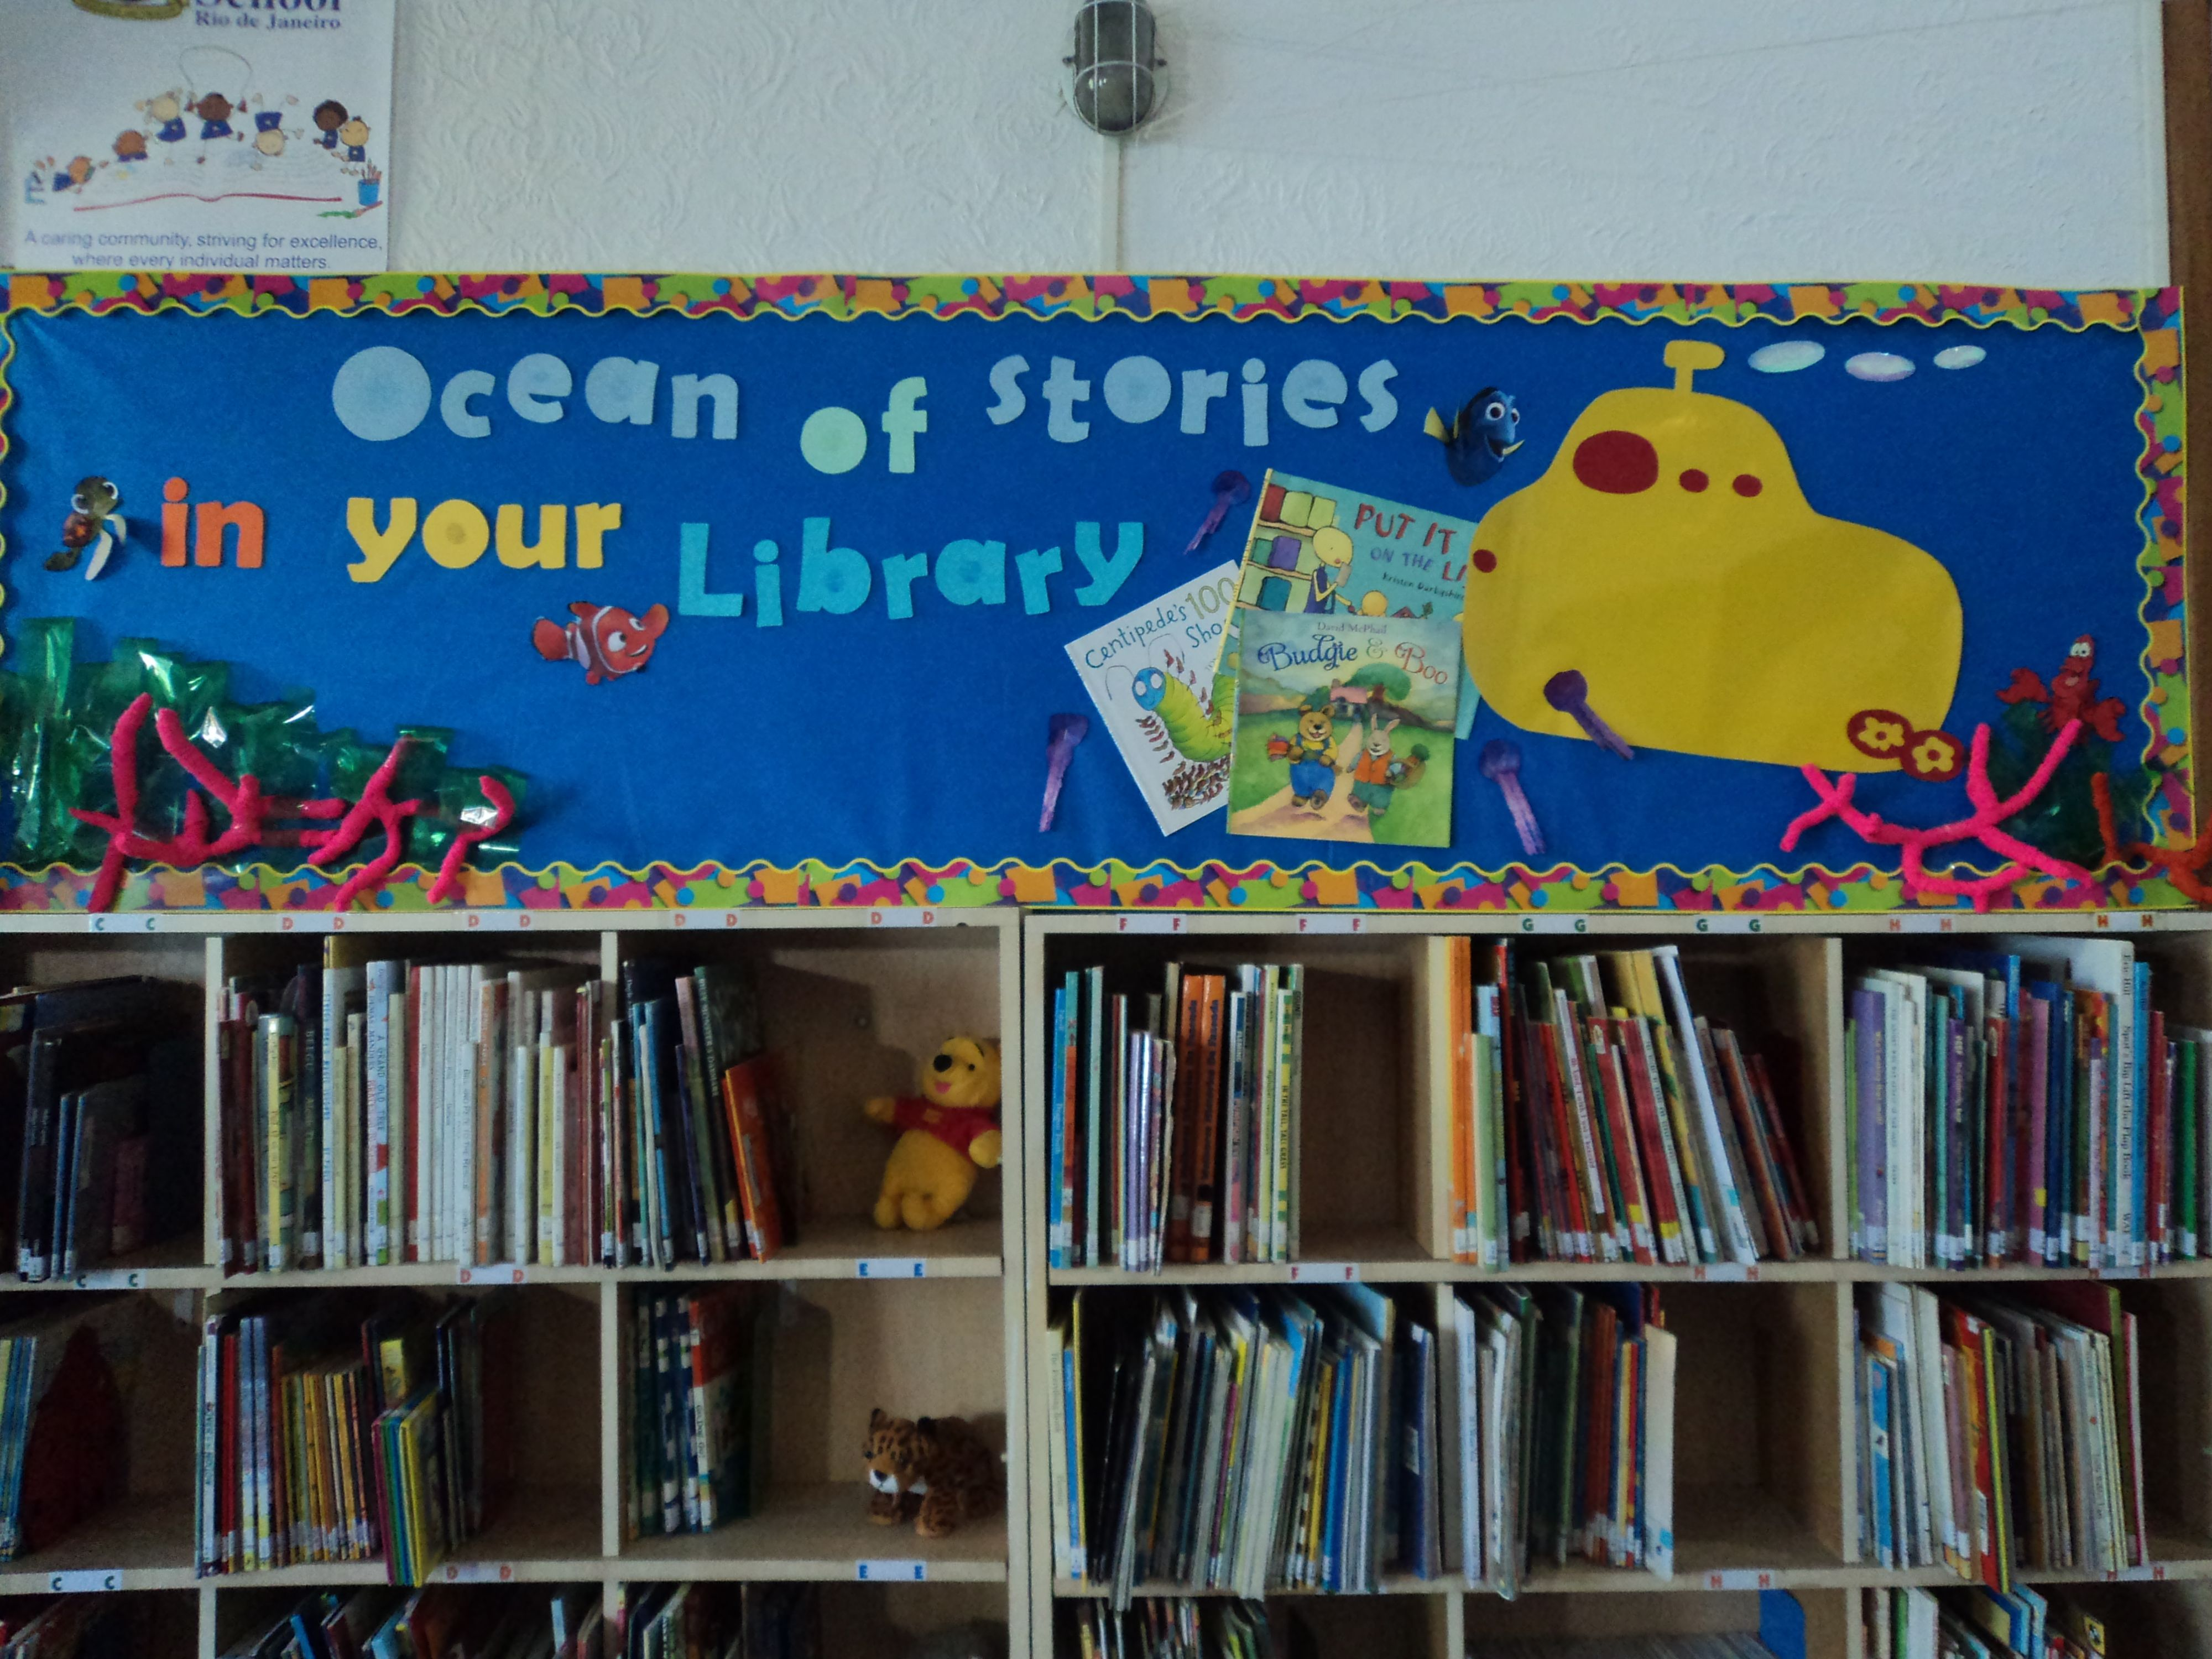 Library Week - Ocean of Stories in your Library.